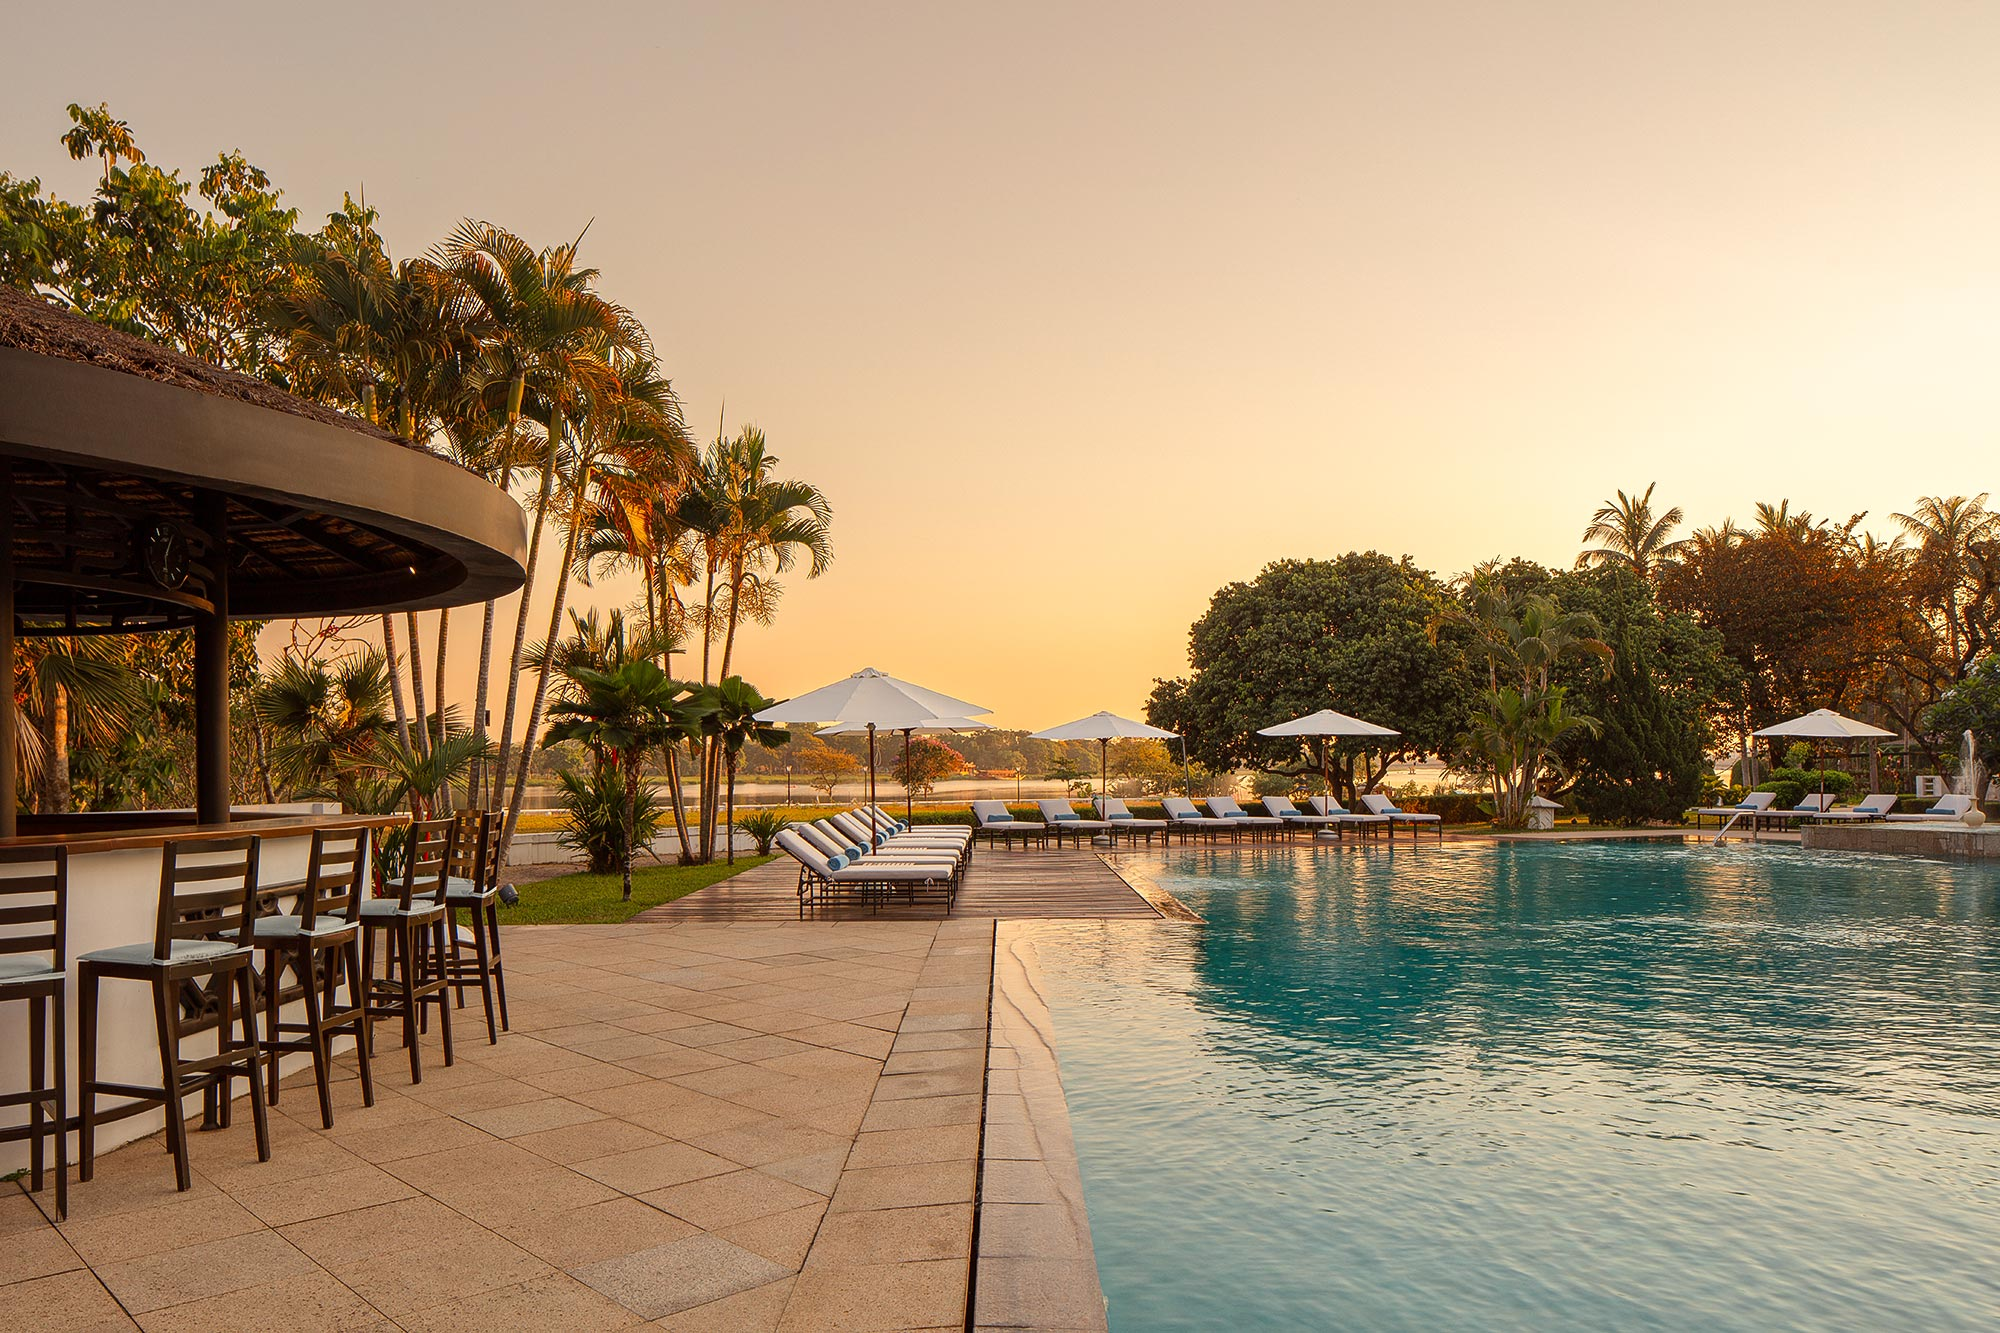 Luxury-Hotel-Pool-Photography-by-Adrian-Kilchherr-Asia-Europe-Worldwide-